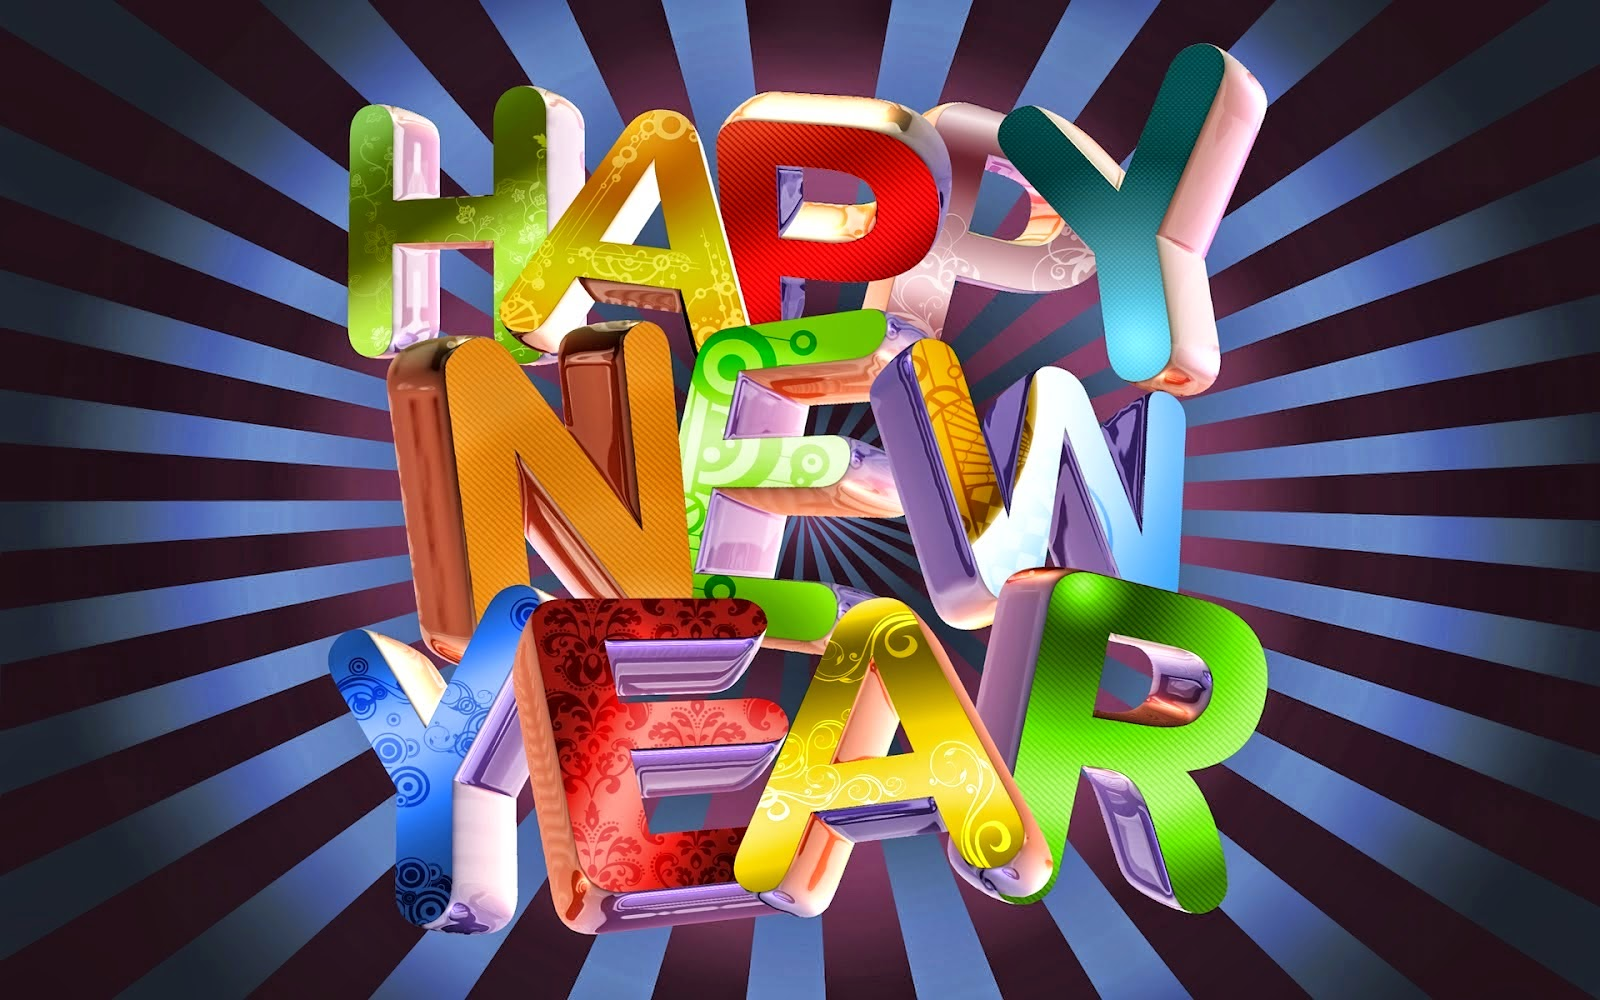 Download-Free-Happy-New-Year-http-www-welcomehappynewyear-com-download-free-wallpaper-wp5205960